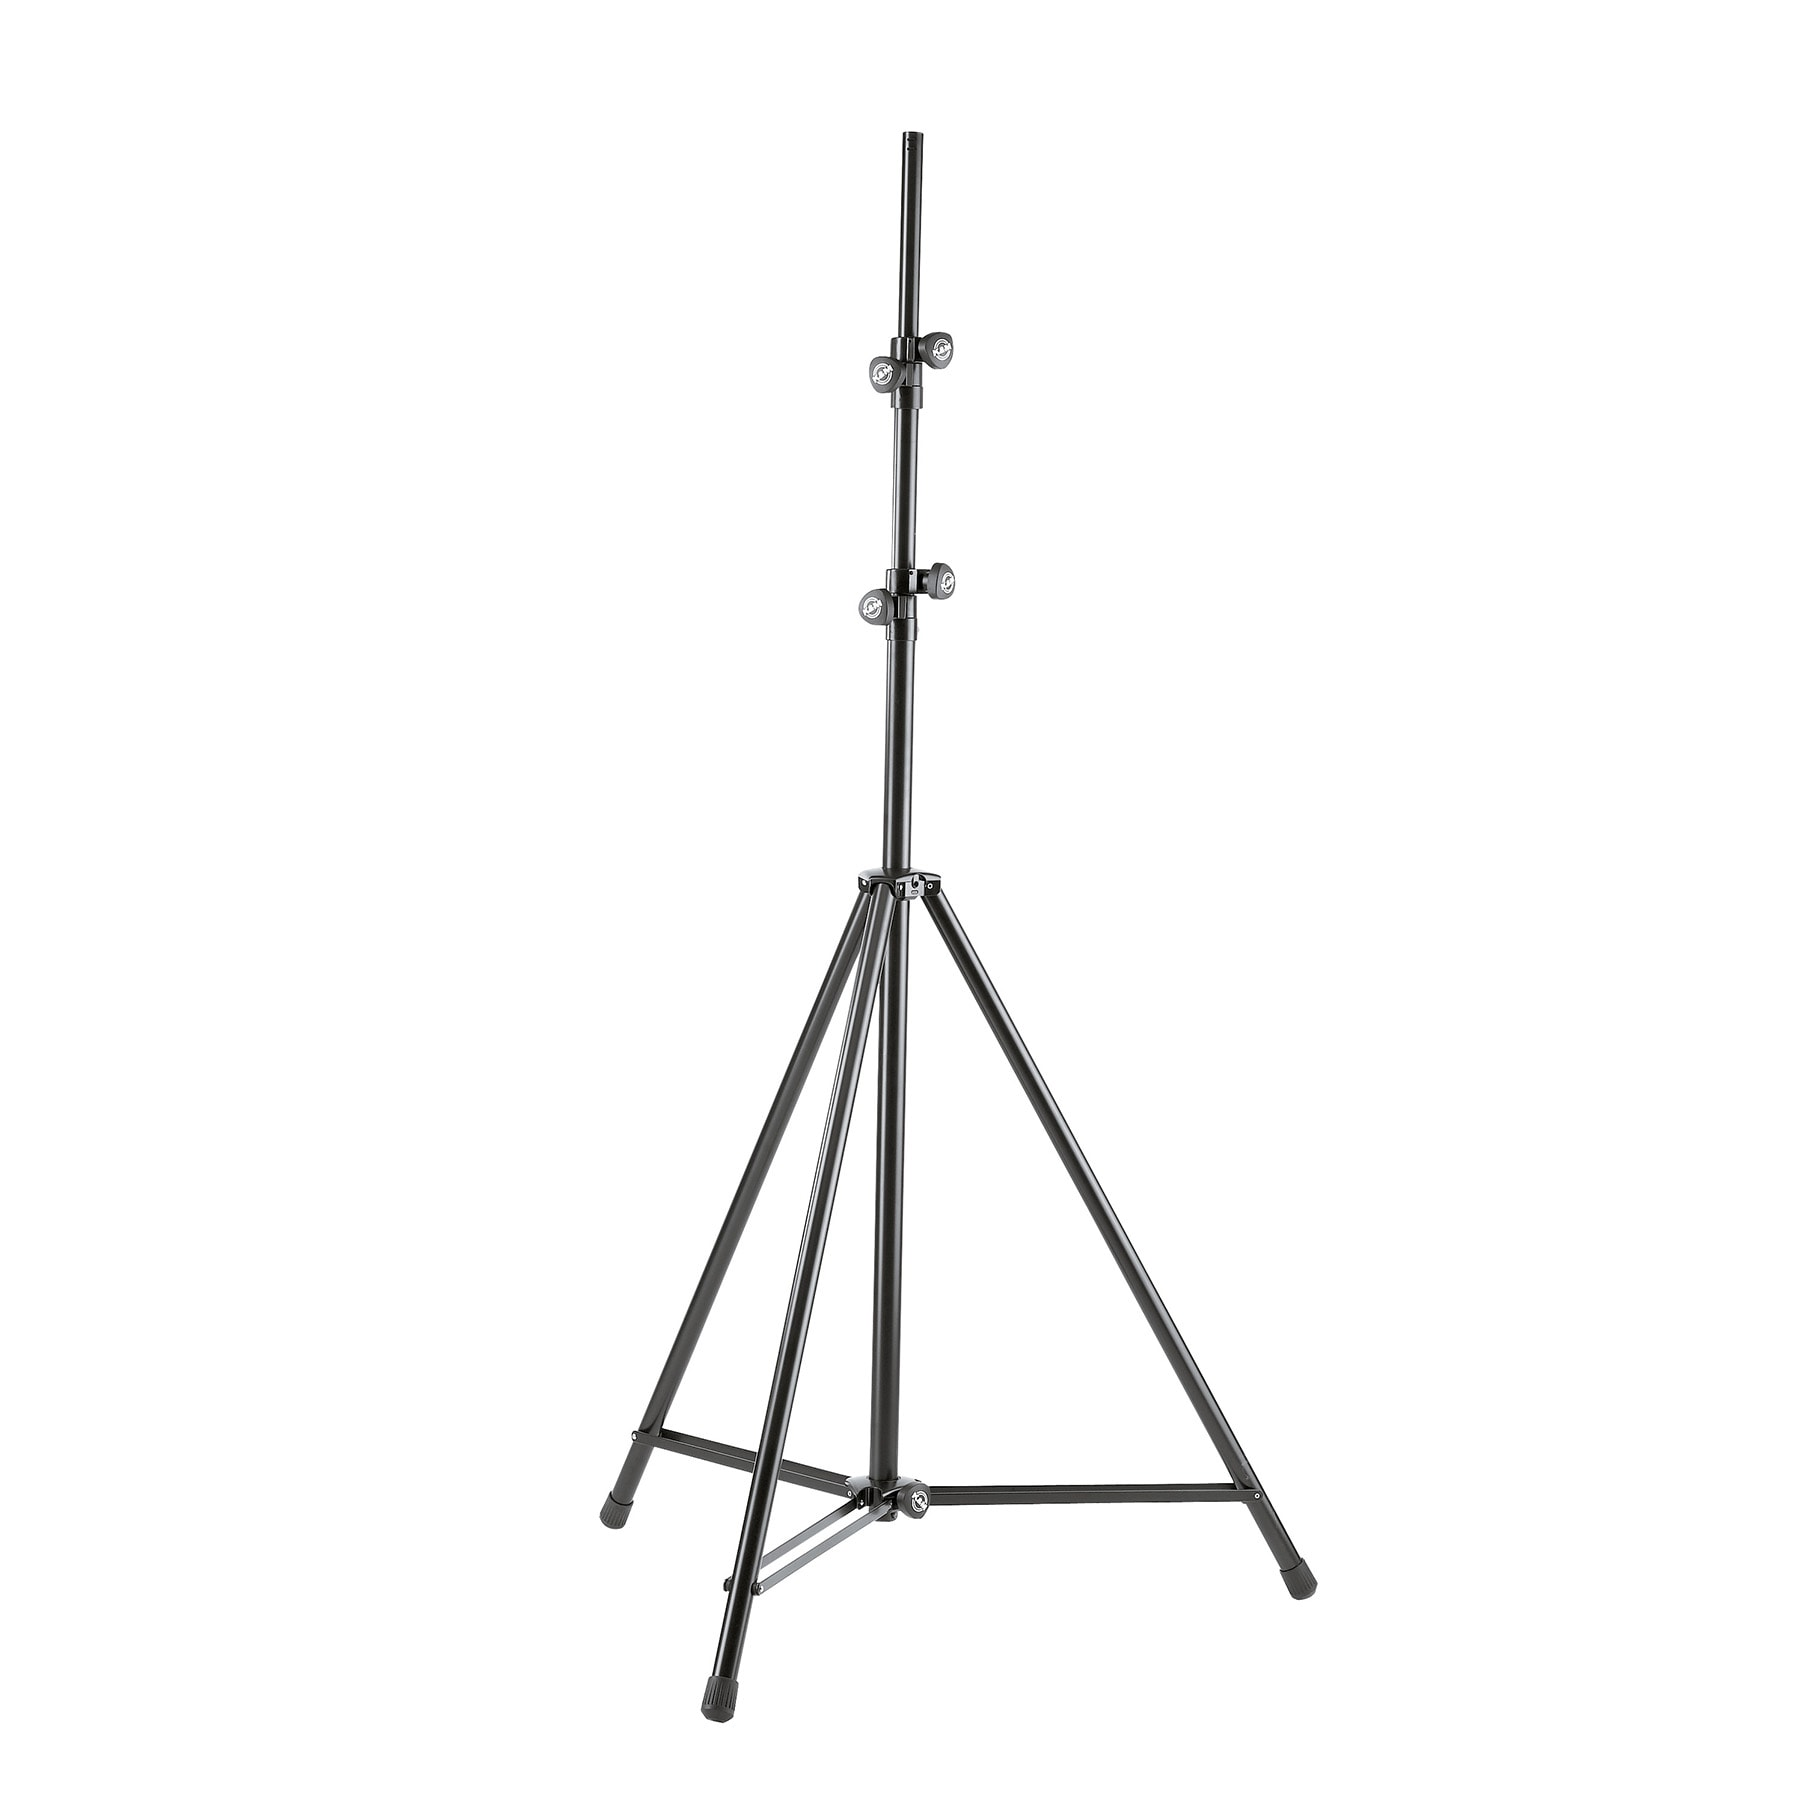 KM24640 - Lighting stand